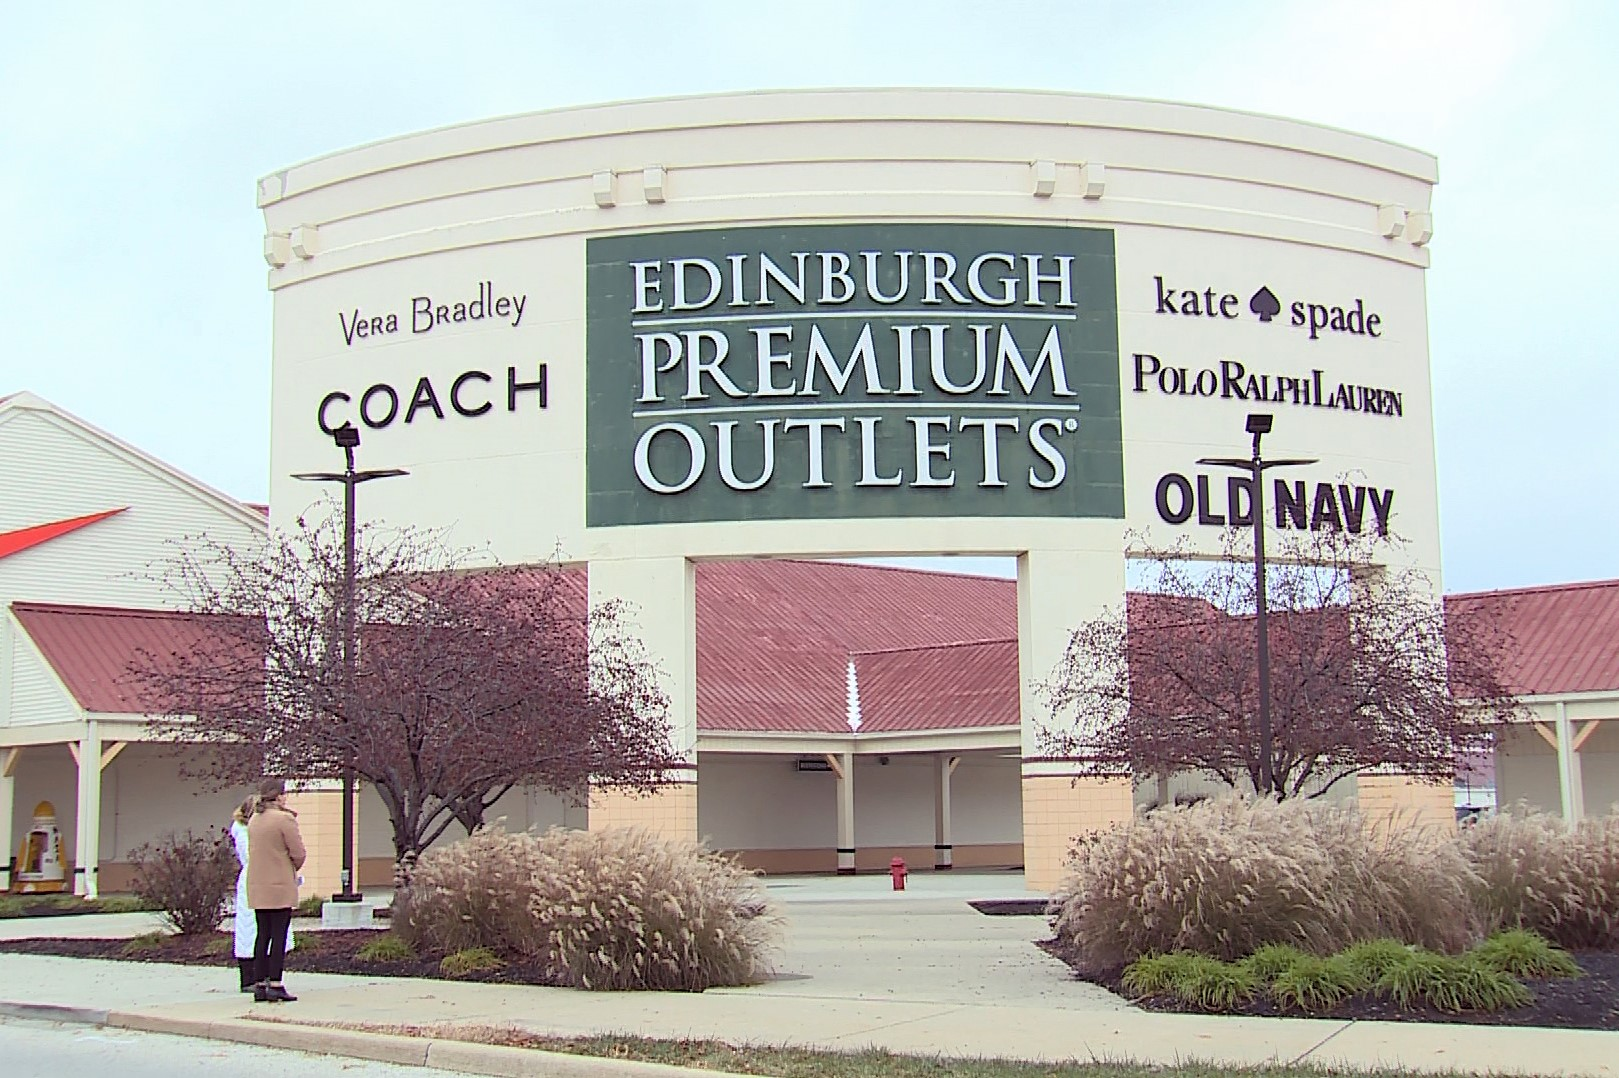 Edinburgh outlet mall